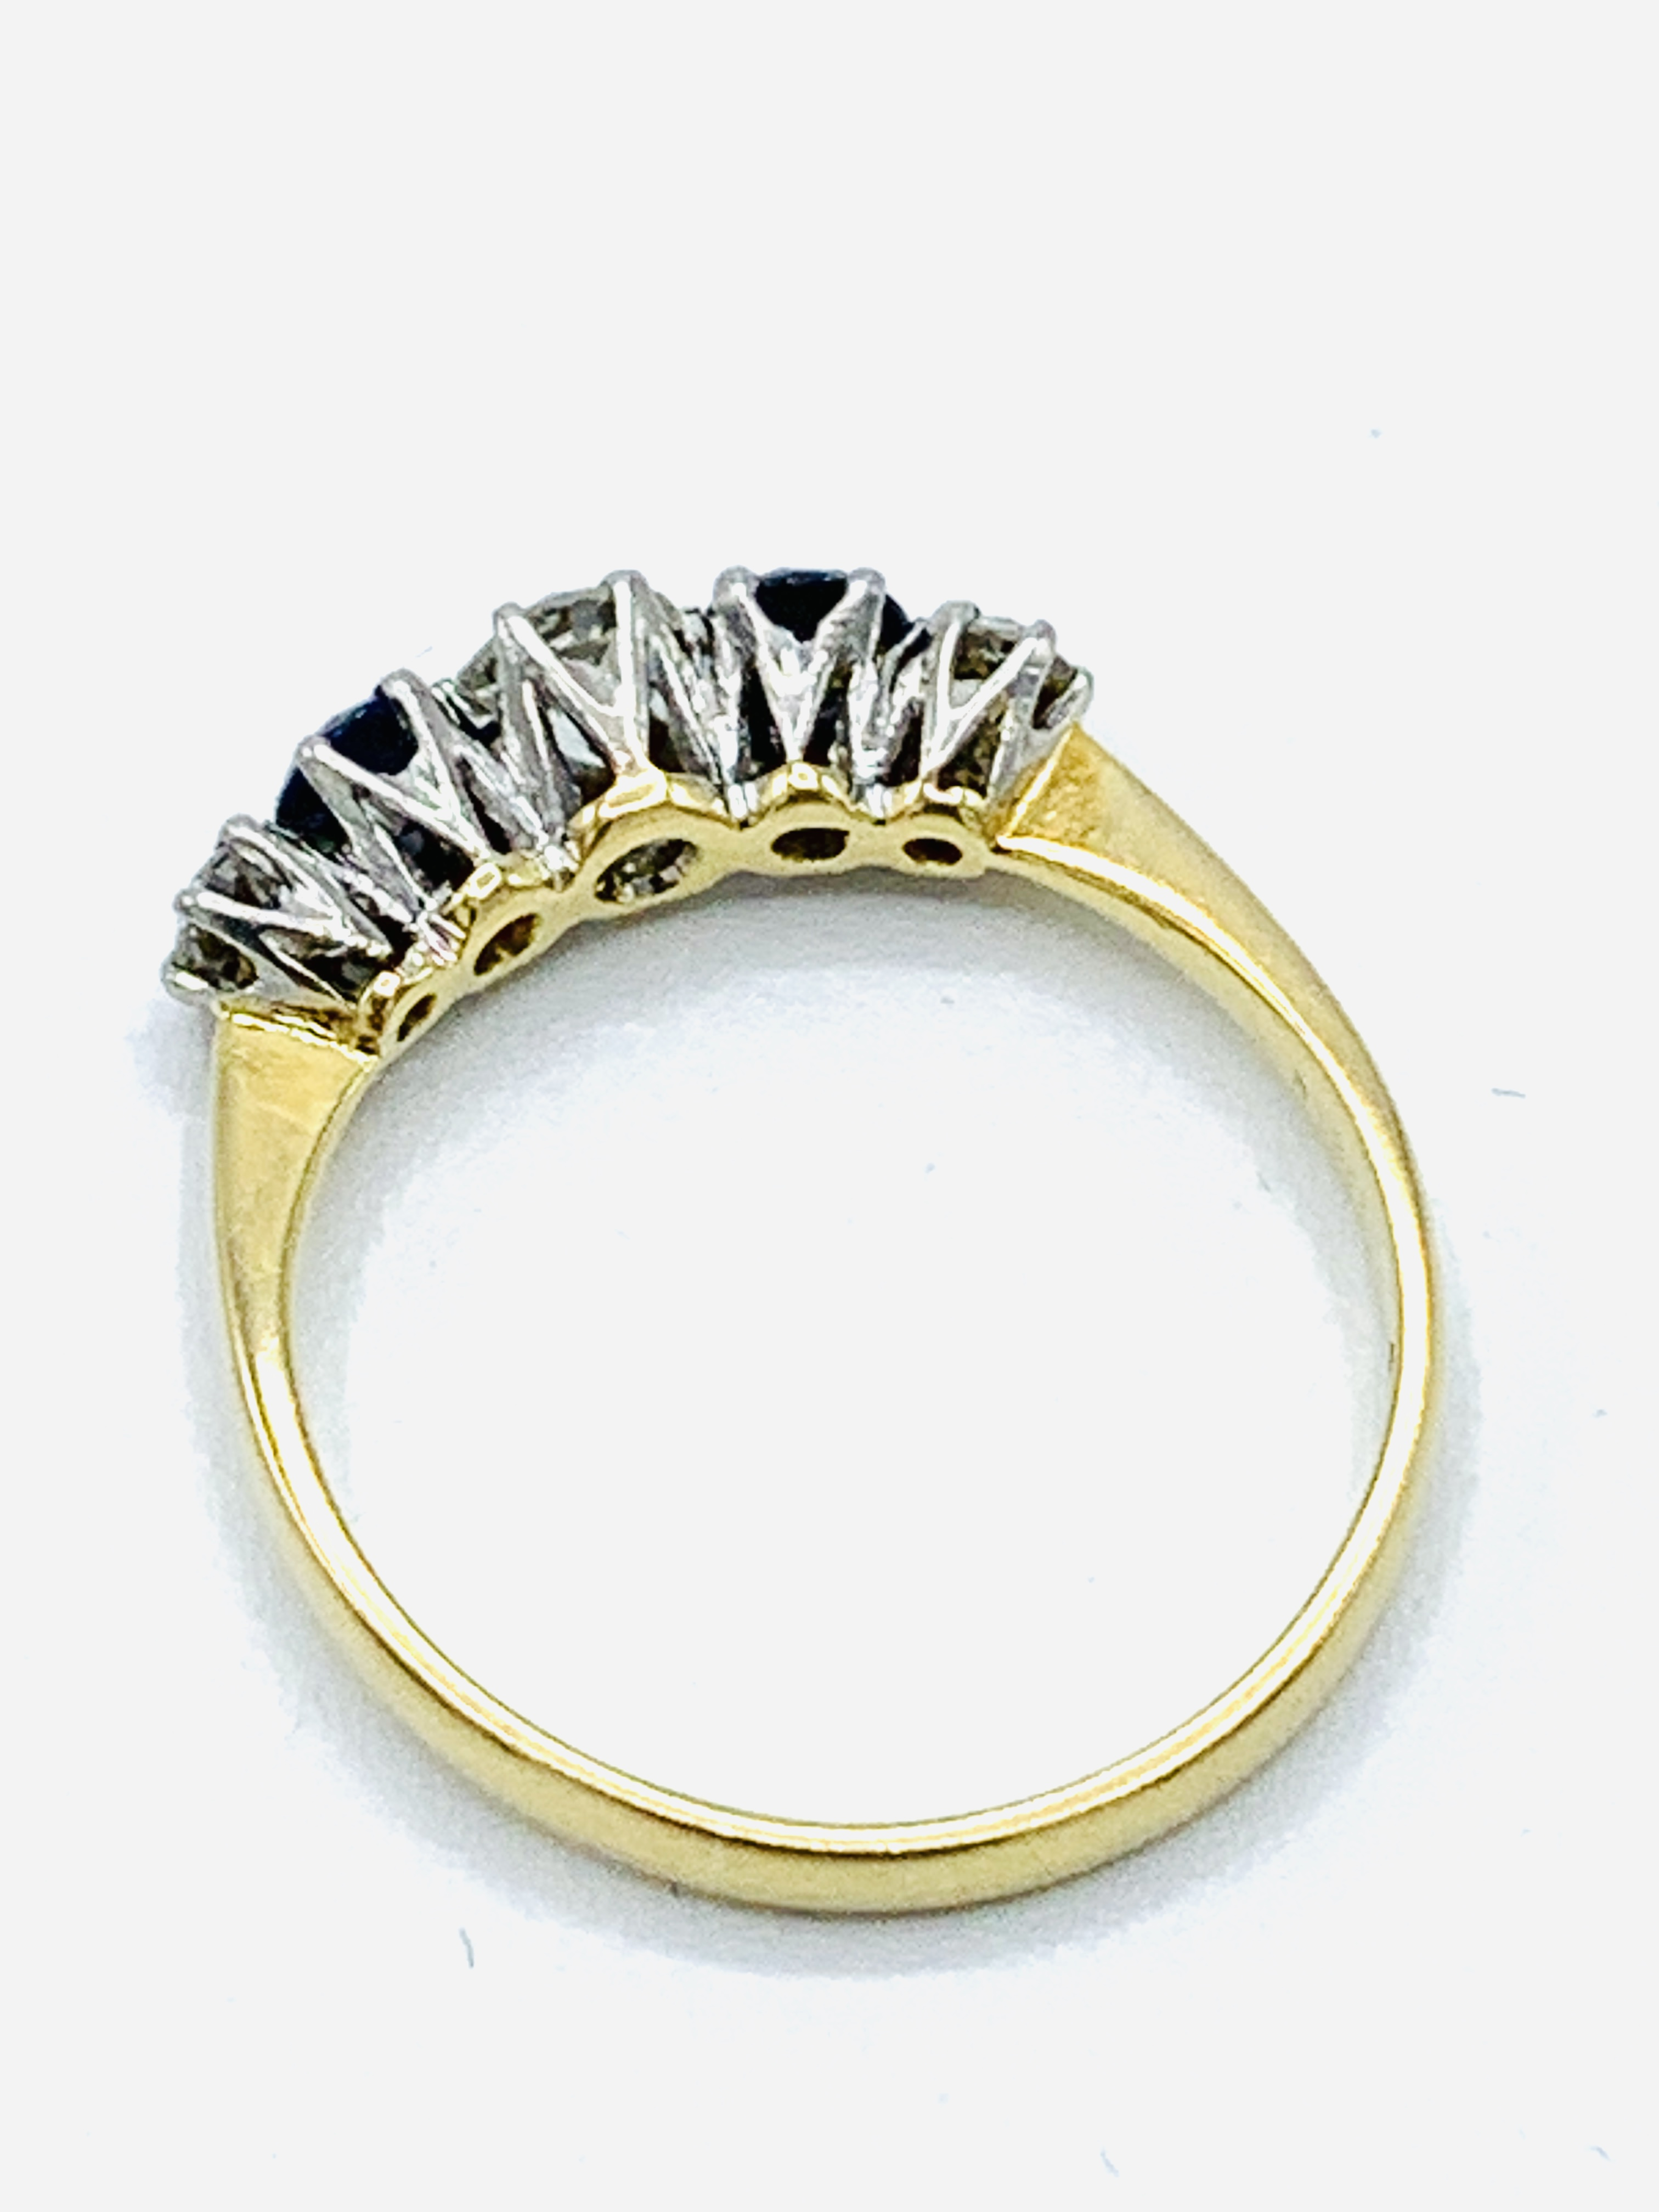 18ct gold and platinum claw set ring of 3 diamonds and 2 sapphires - Image 4 of 4